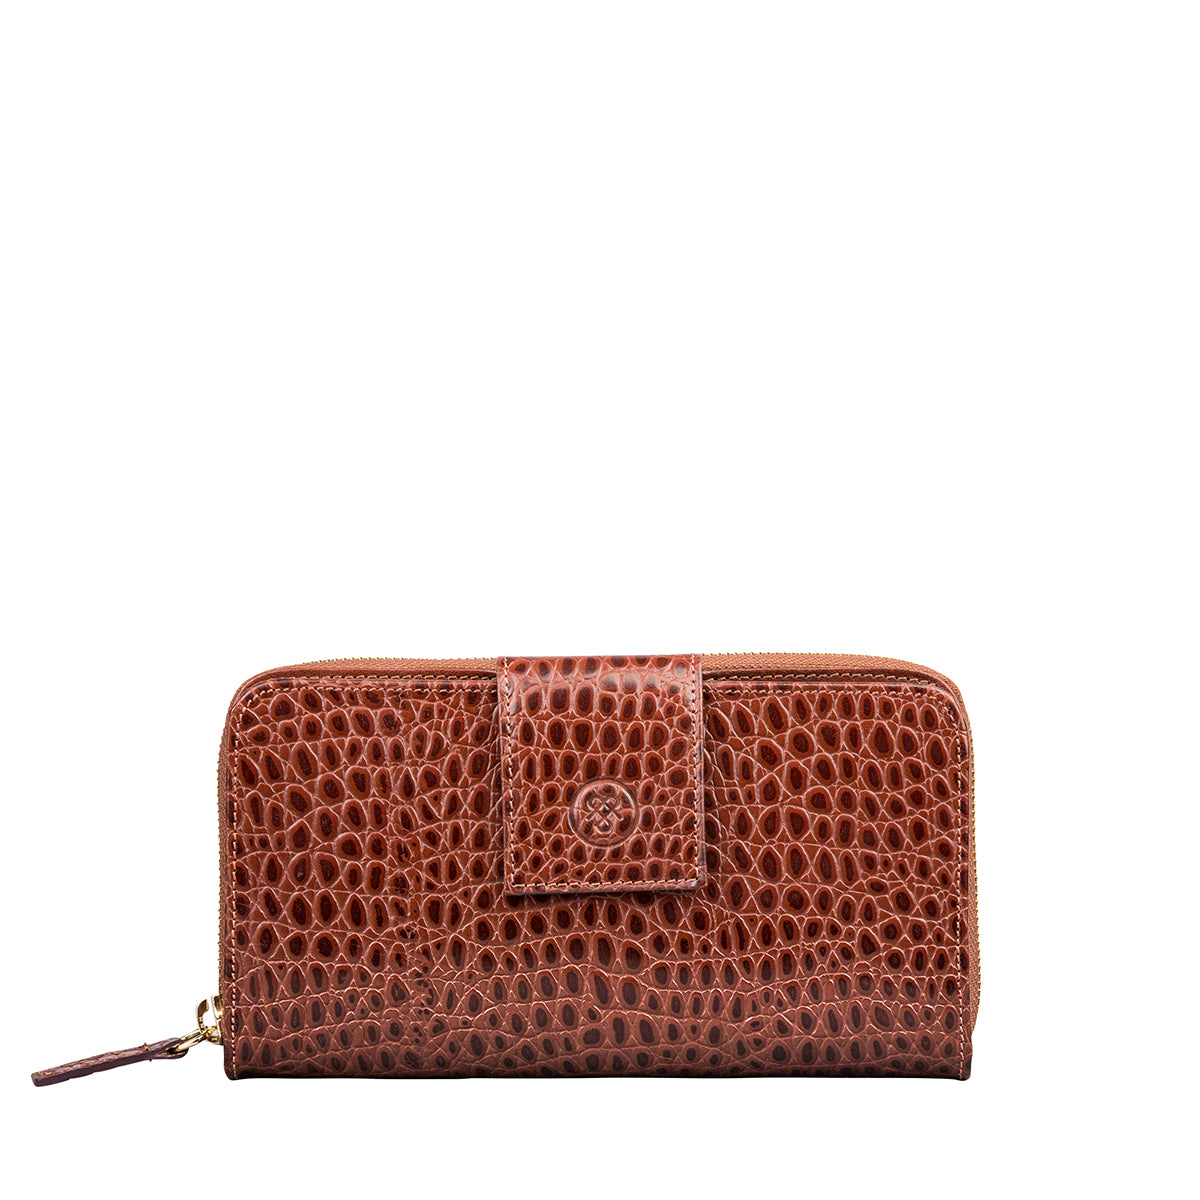 Image 1 of the 'Giorgia' Chestnut Mock Croc Veg-Tanned Leather Zip Purse